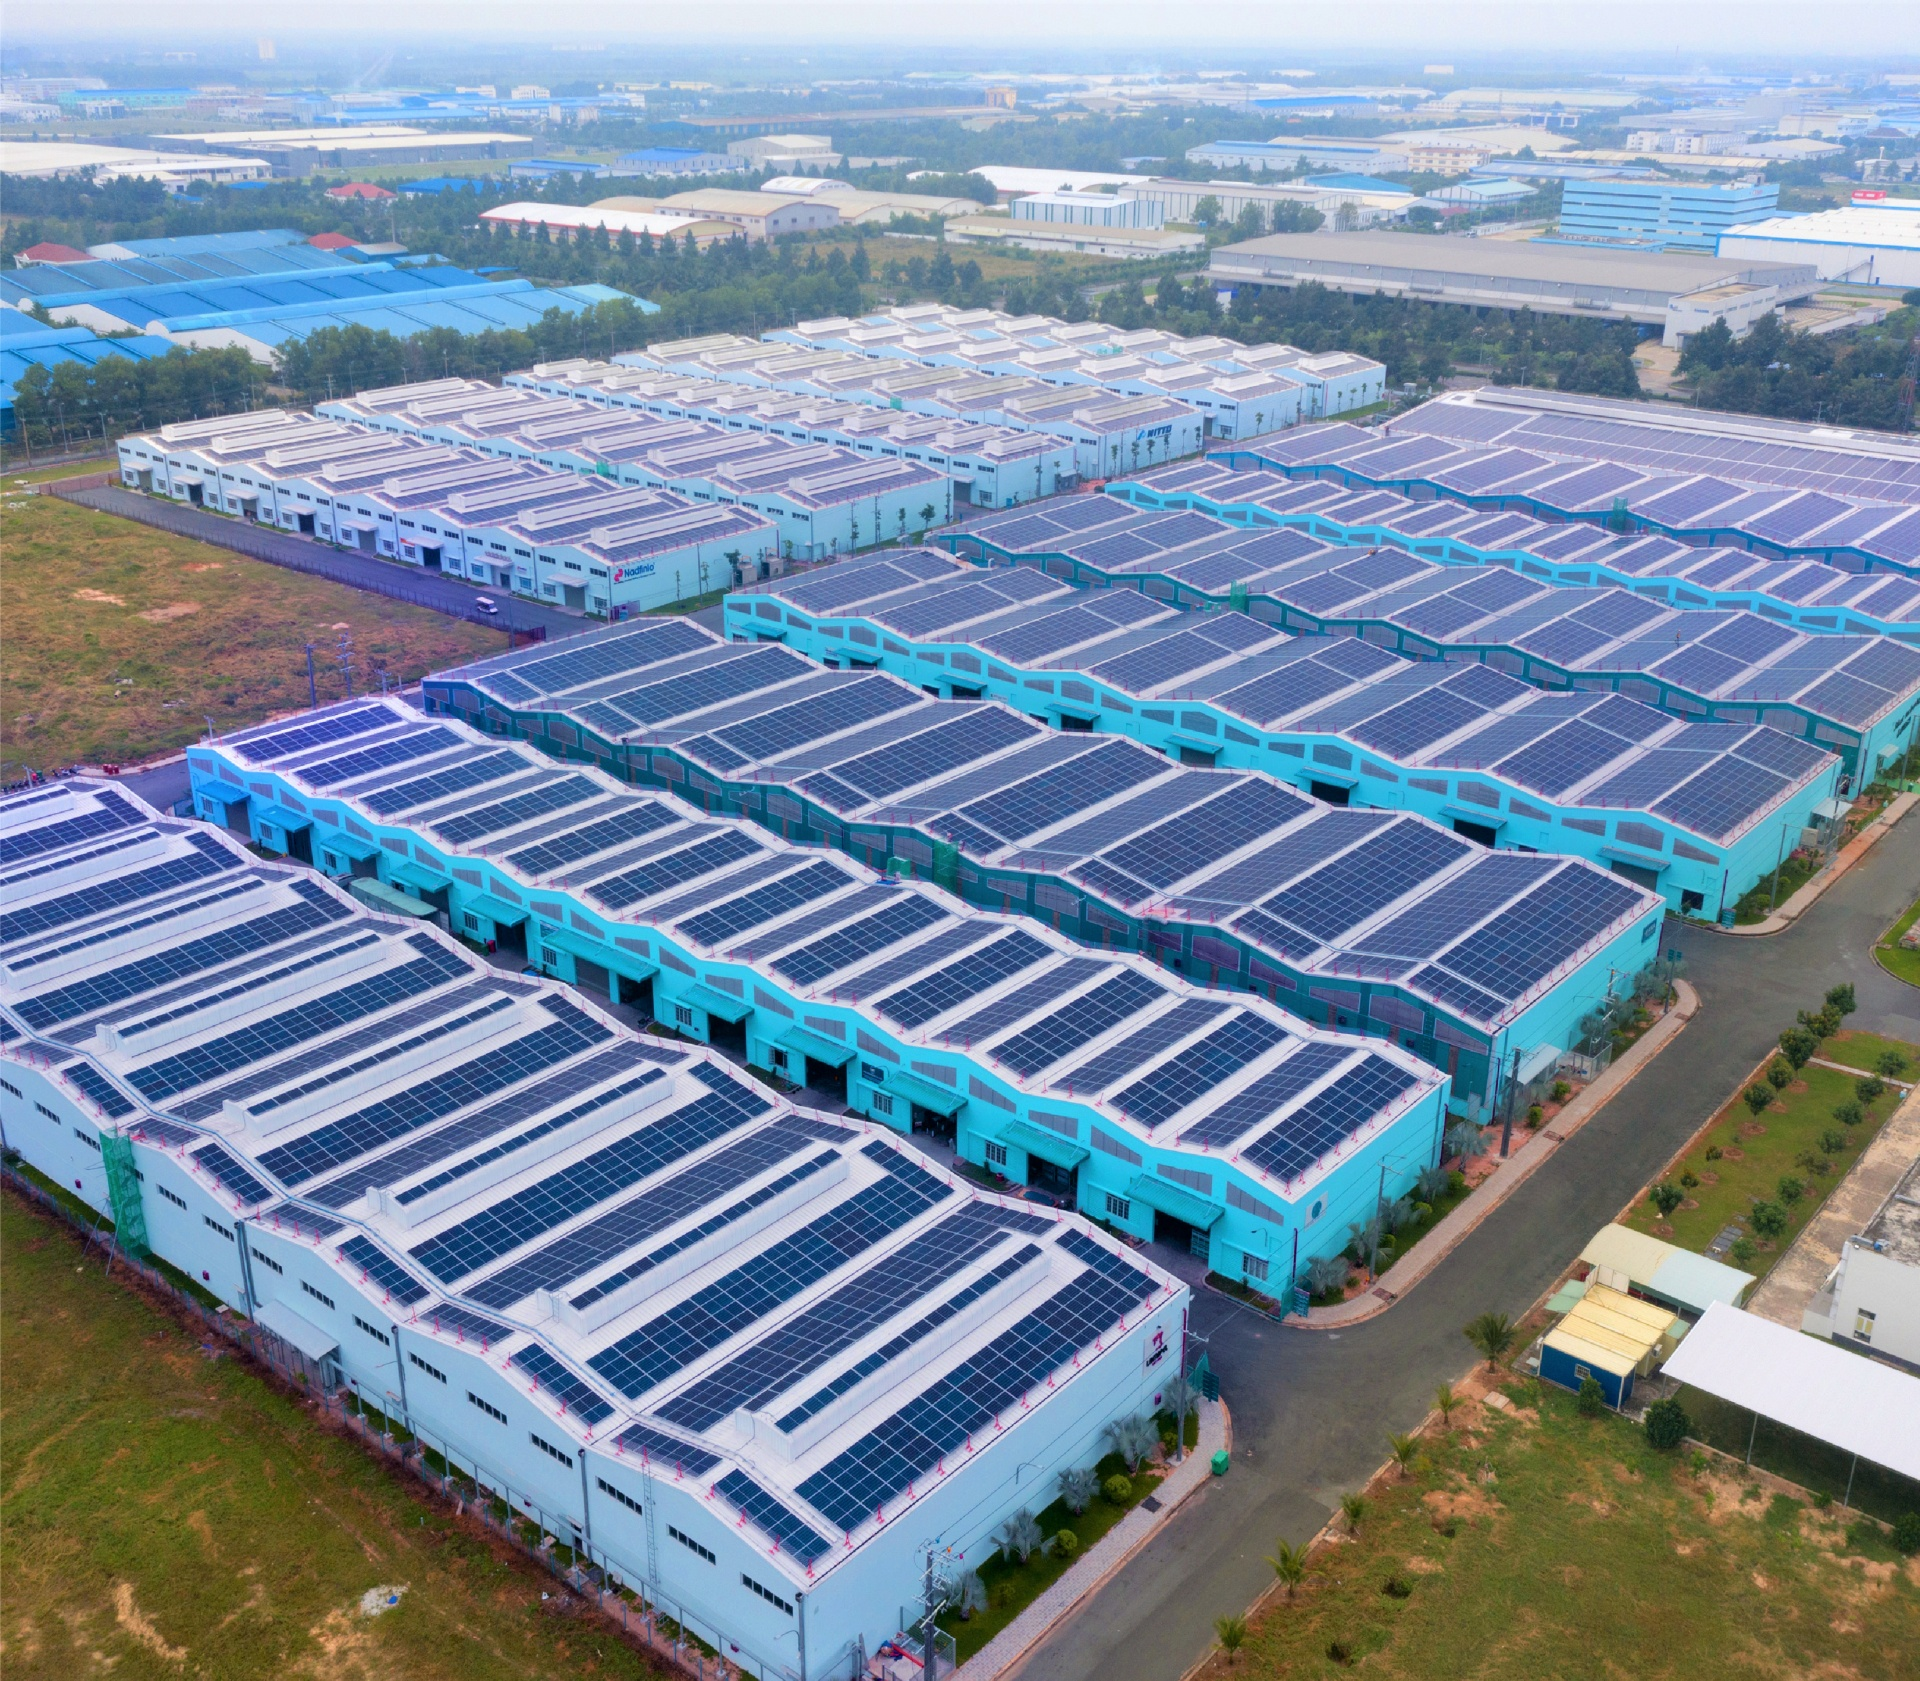 SkyX Solar invests $100 million in 200MWp rooftop solar capacity in next three years